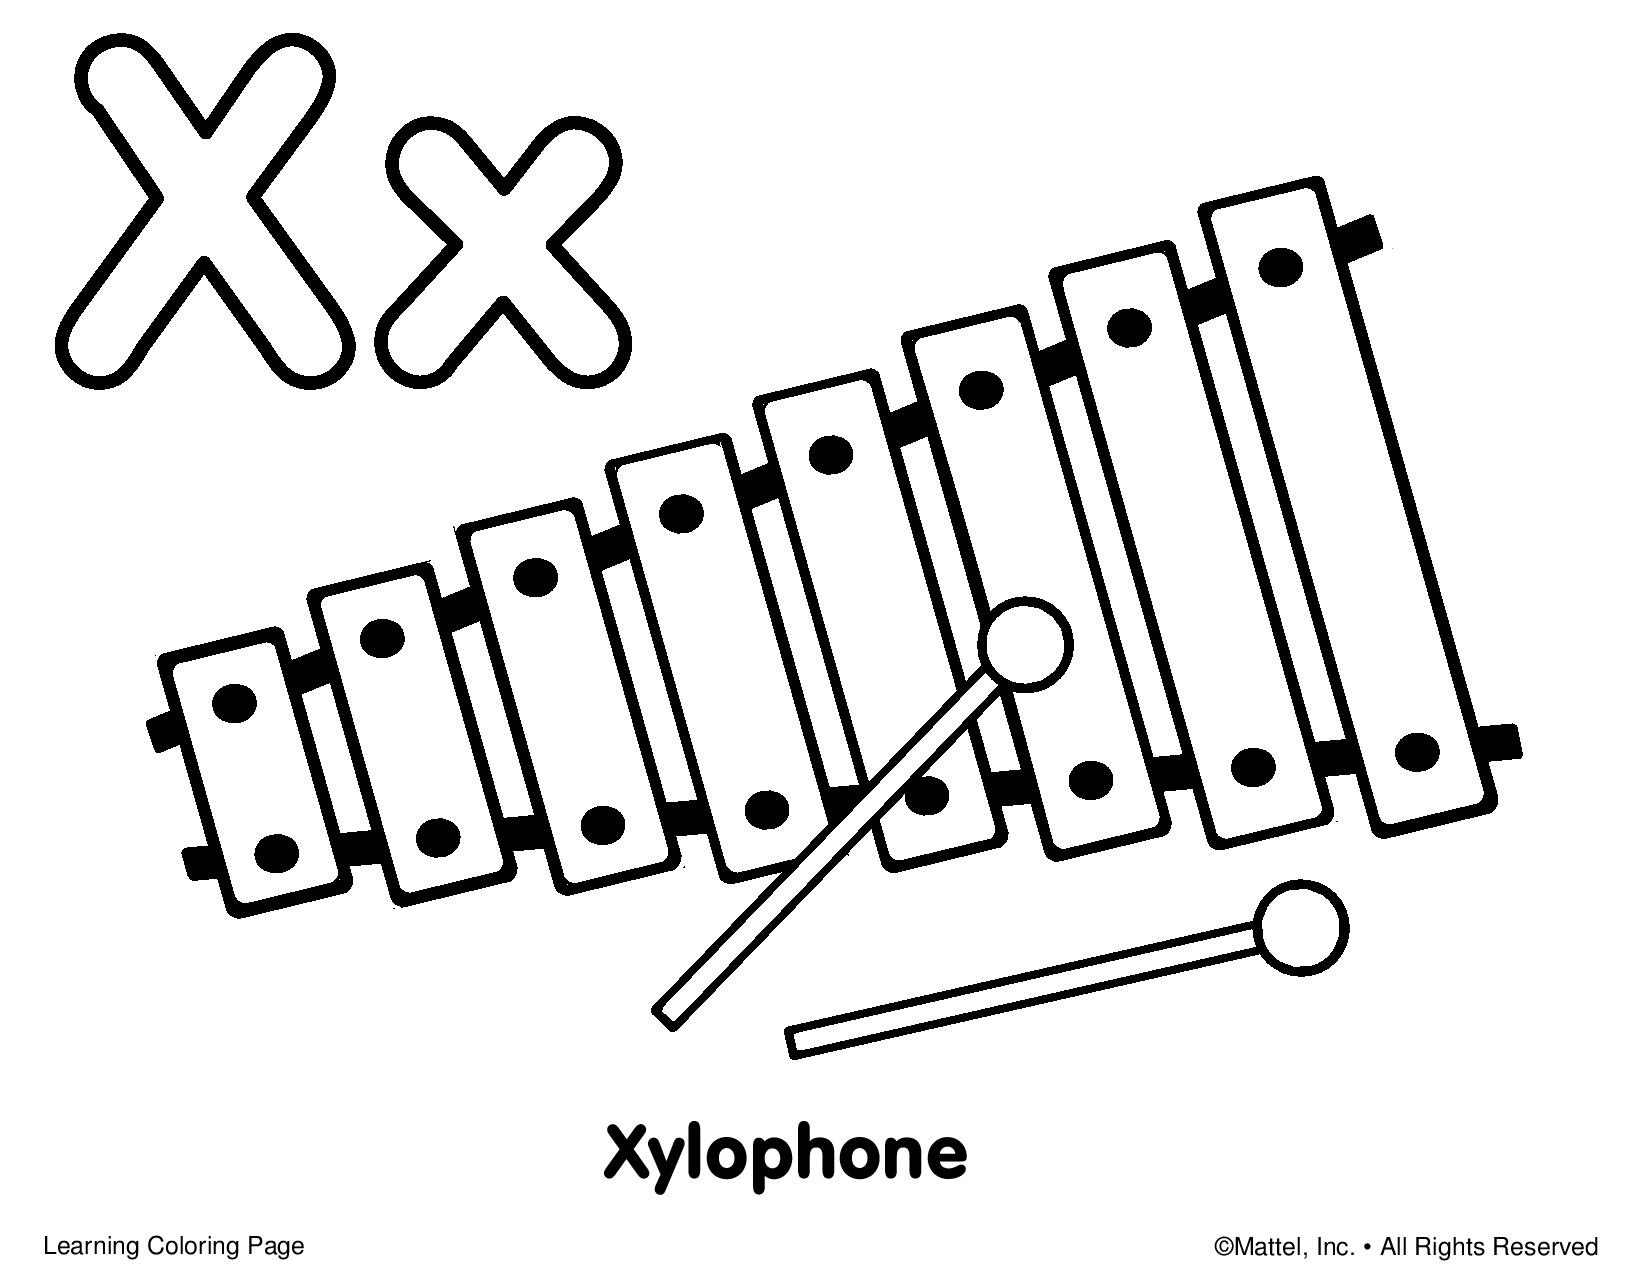 x is for xylophone coloring page learn letter x for xylophone coloring page bulk color di for page x is coloring xylophone